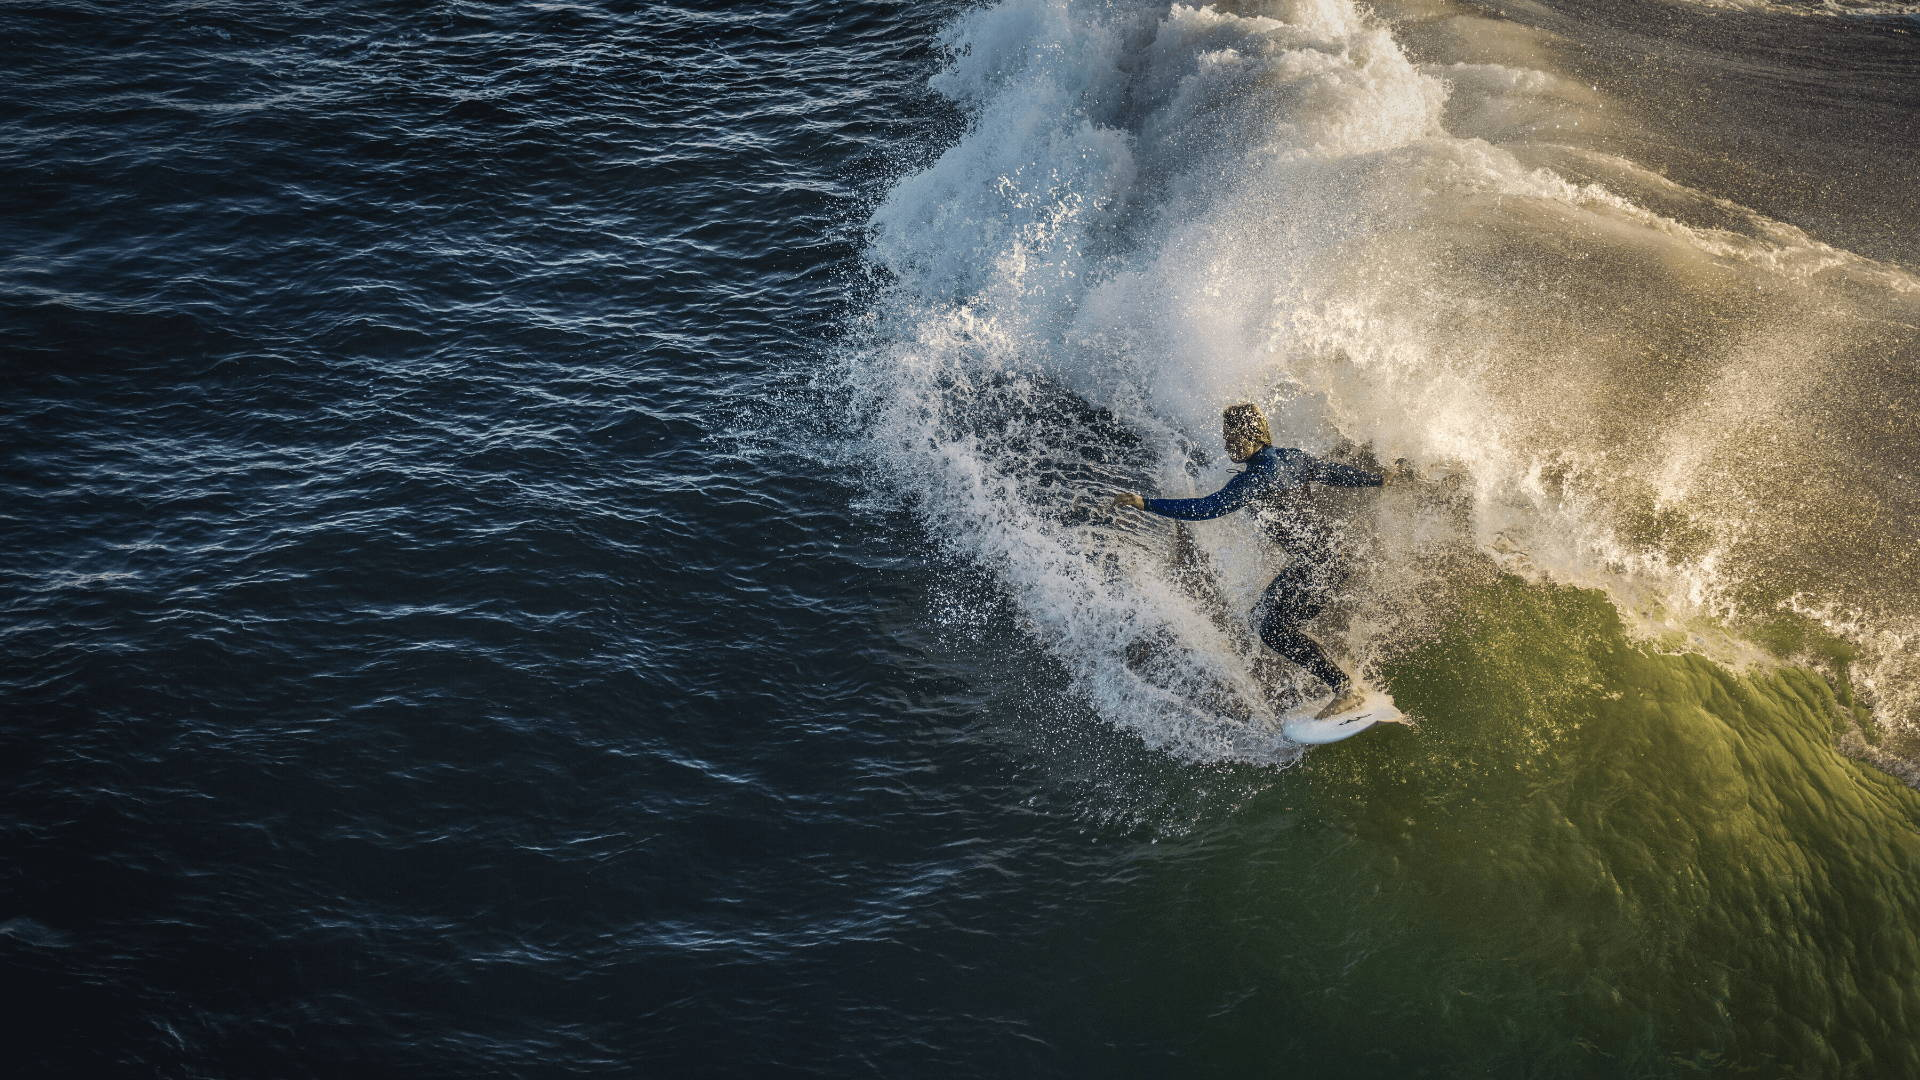 Surfing Nayarit Mexico